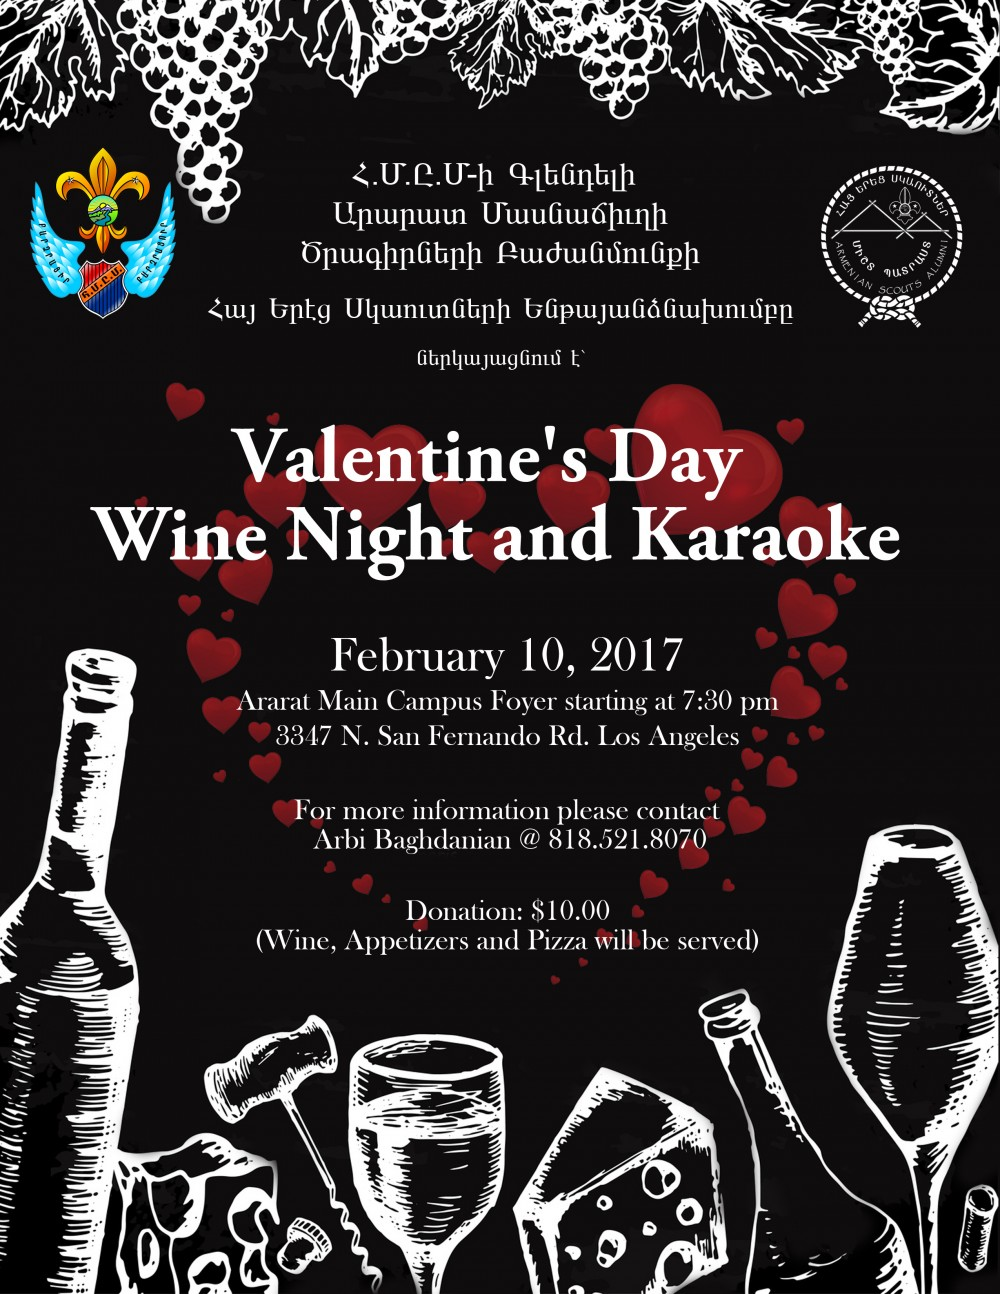 Valentine's Day Wine Night & Karaoke